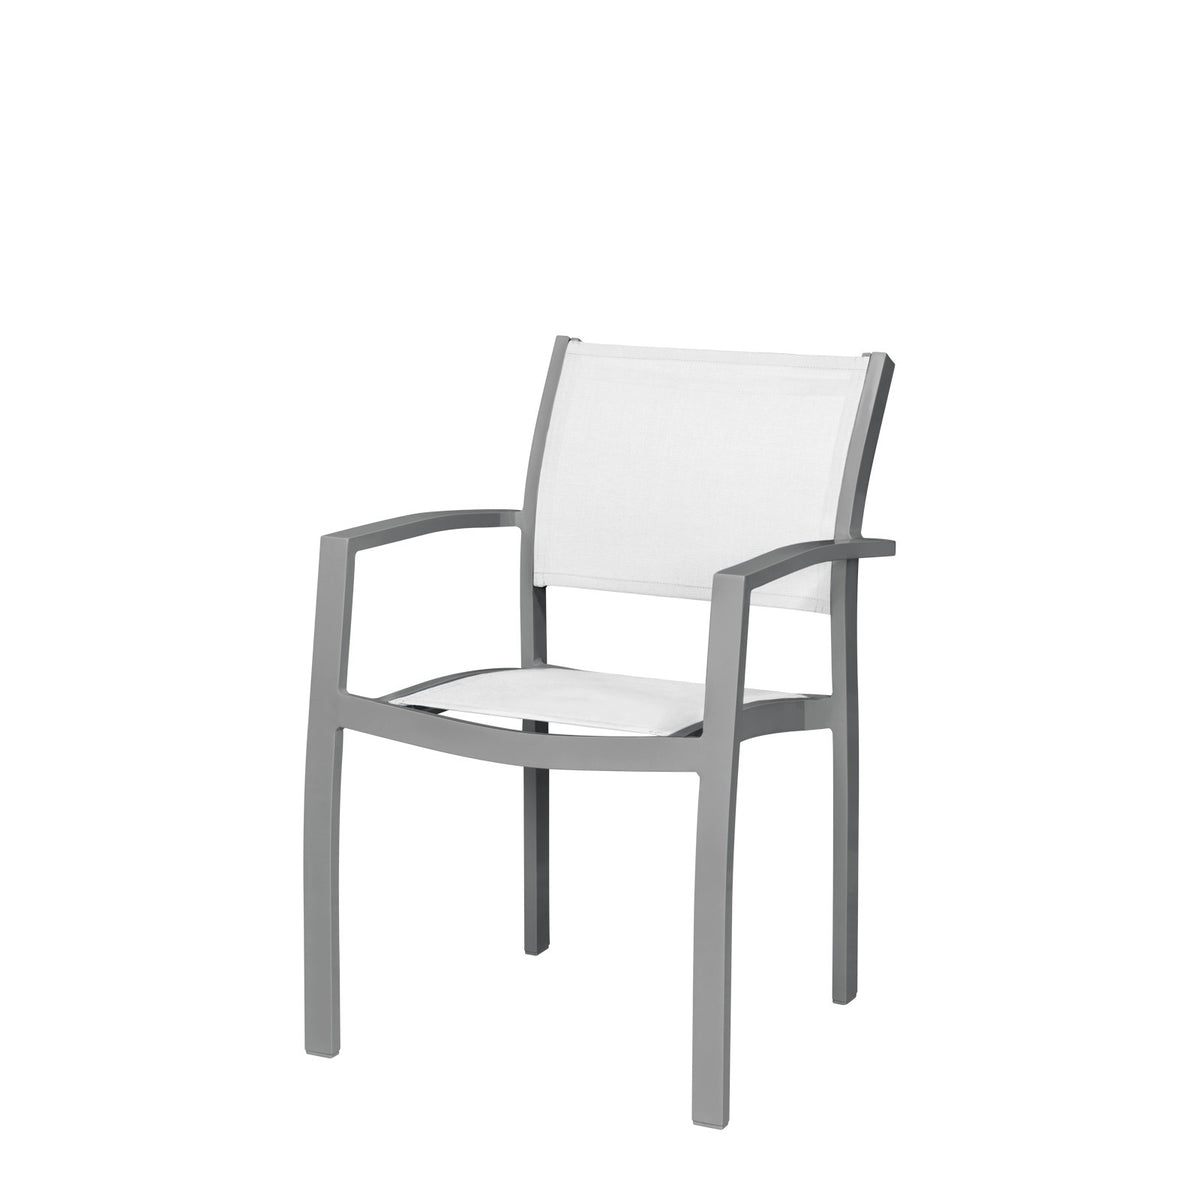 Source Furniture Source Furniture Fusion Dining Arm Chair Dining Arm Chair - Rattan Imports